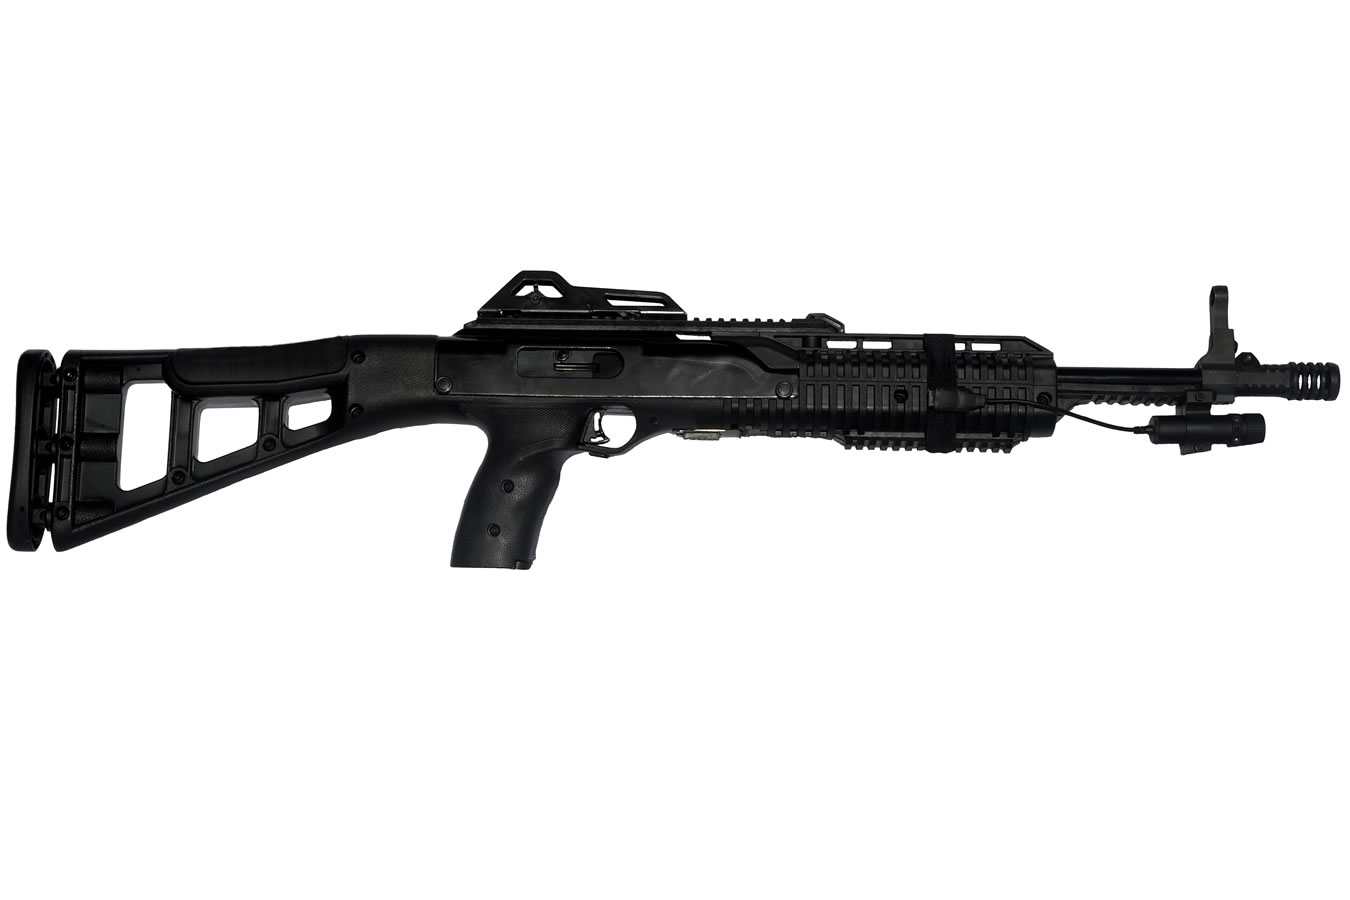 hight resolution of hi point 995ts 9mm carbine with las 9 laser